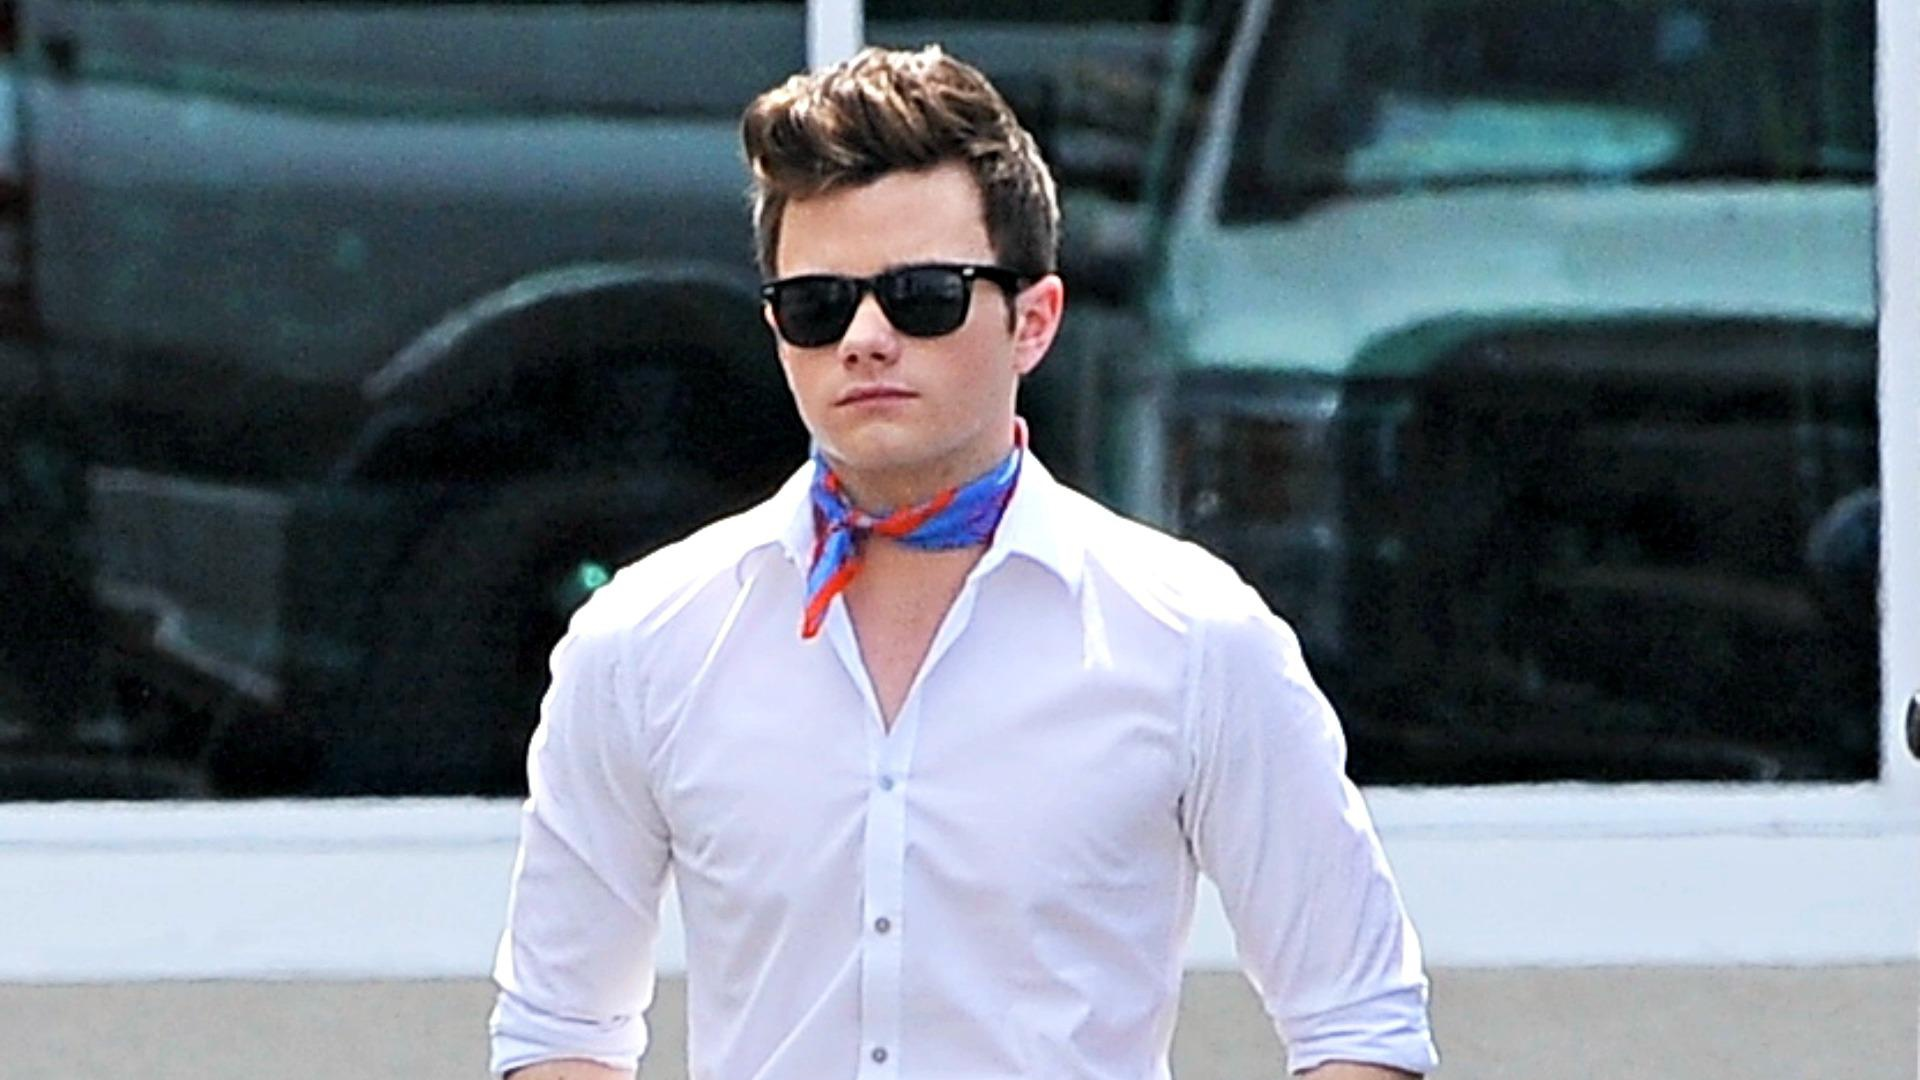 Calm down, Gleeks: Chris Colfer's Twitter was hacked